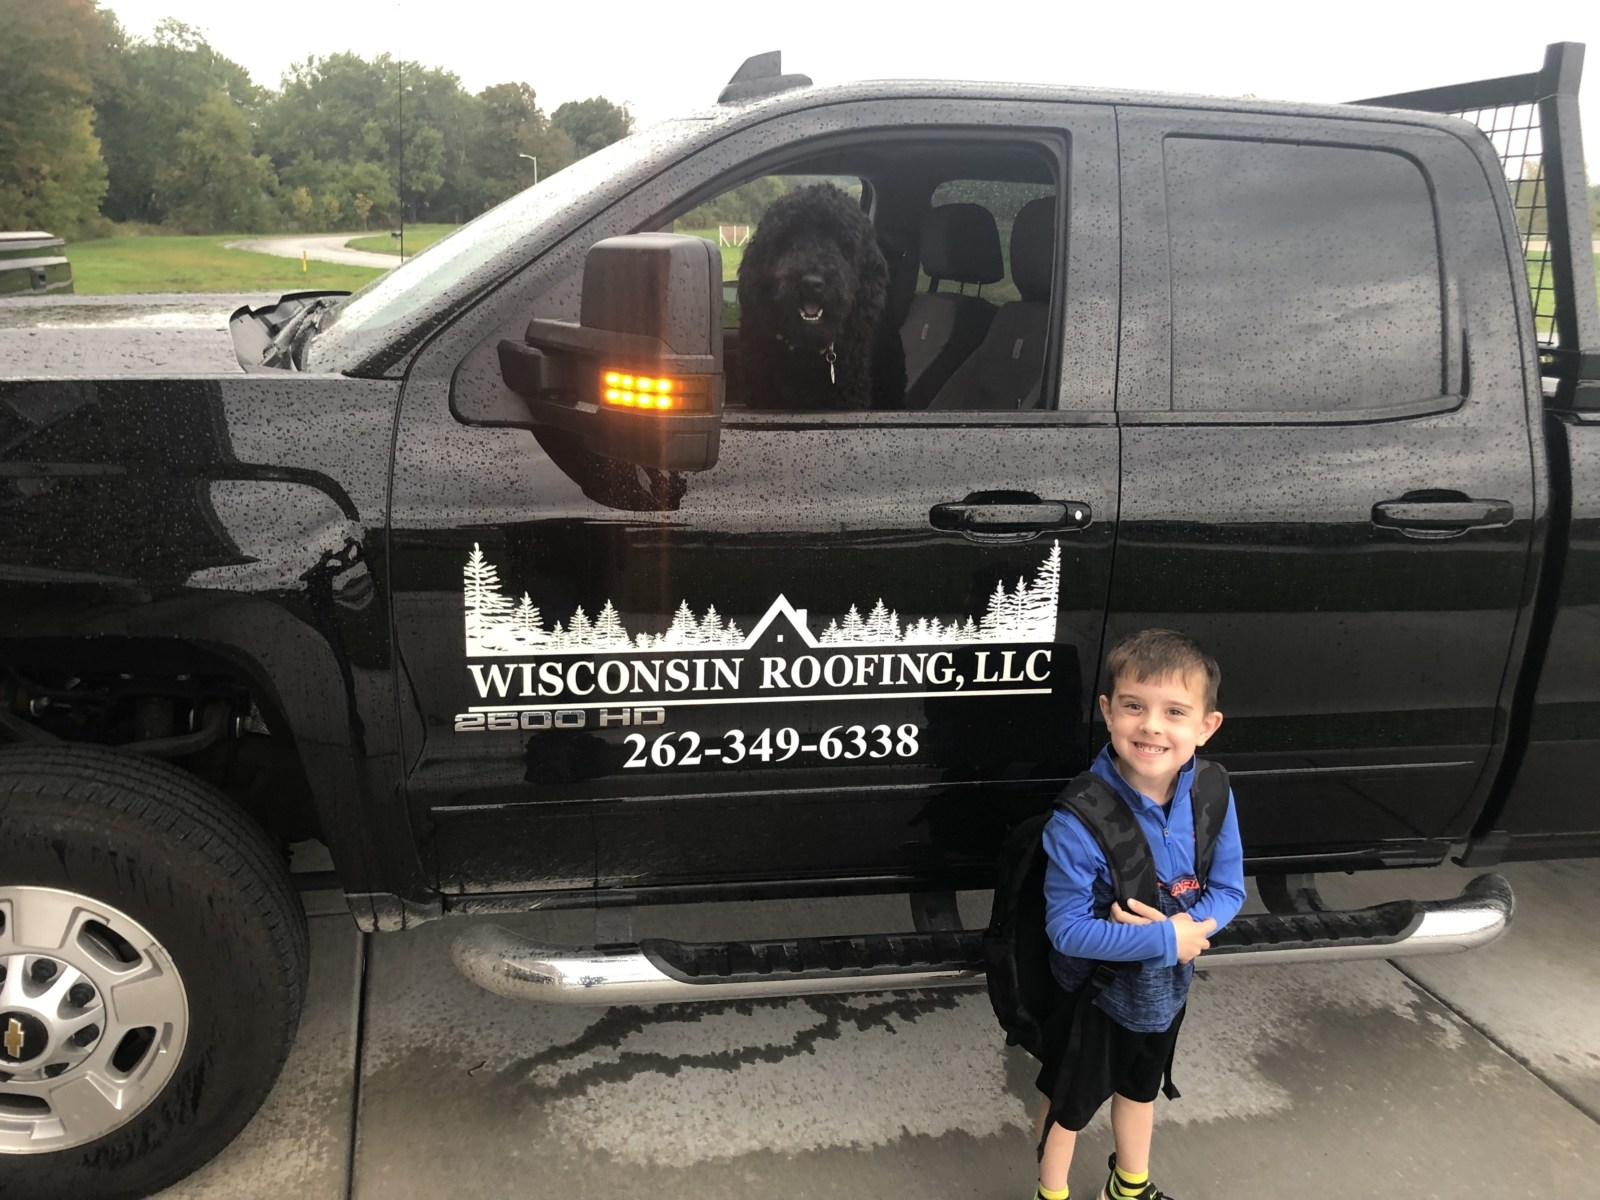 Wisconsin Roofing LLC Family Life Kids Trucks Dogs